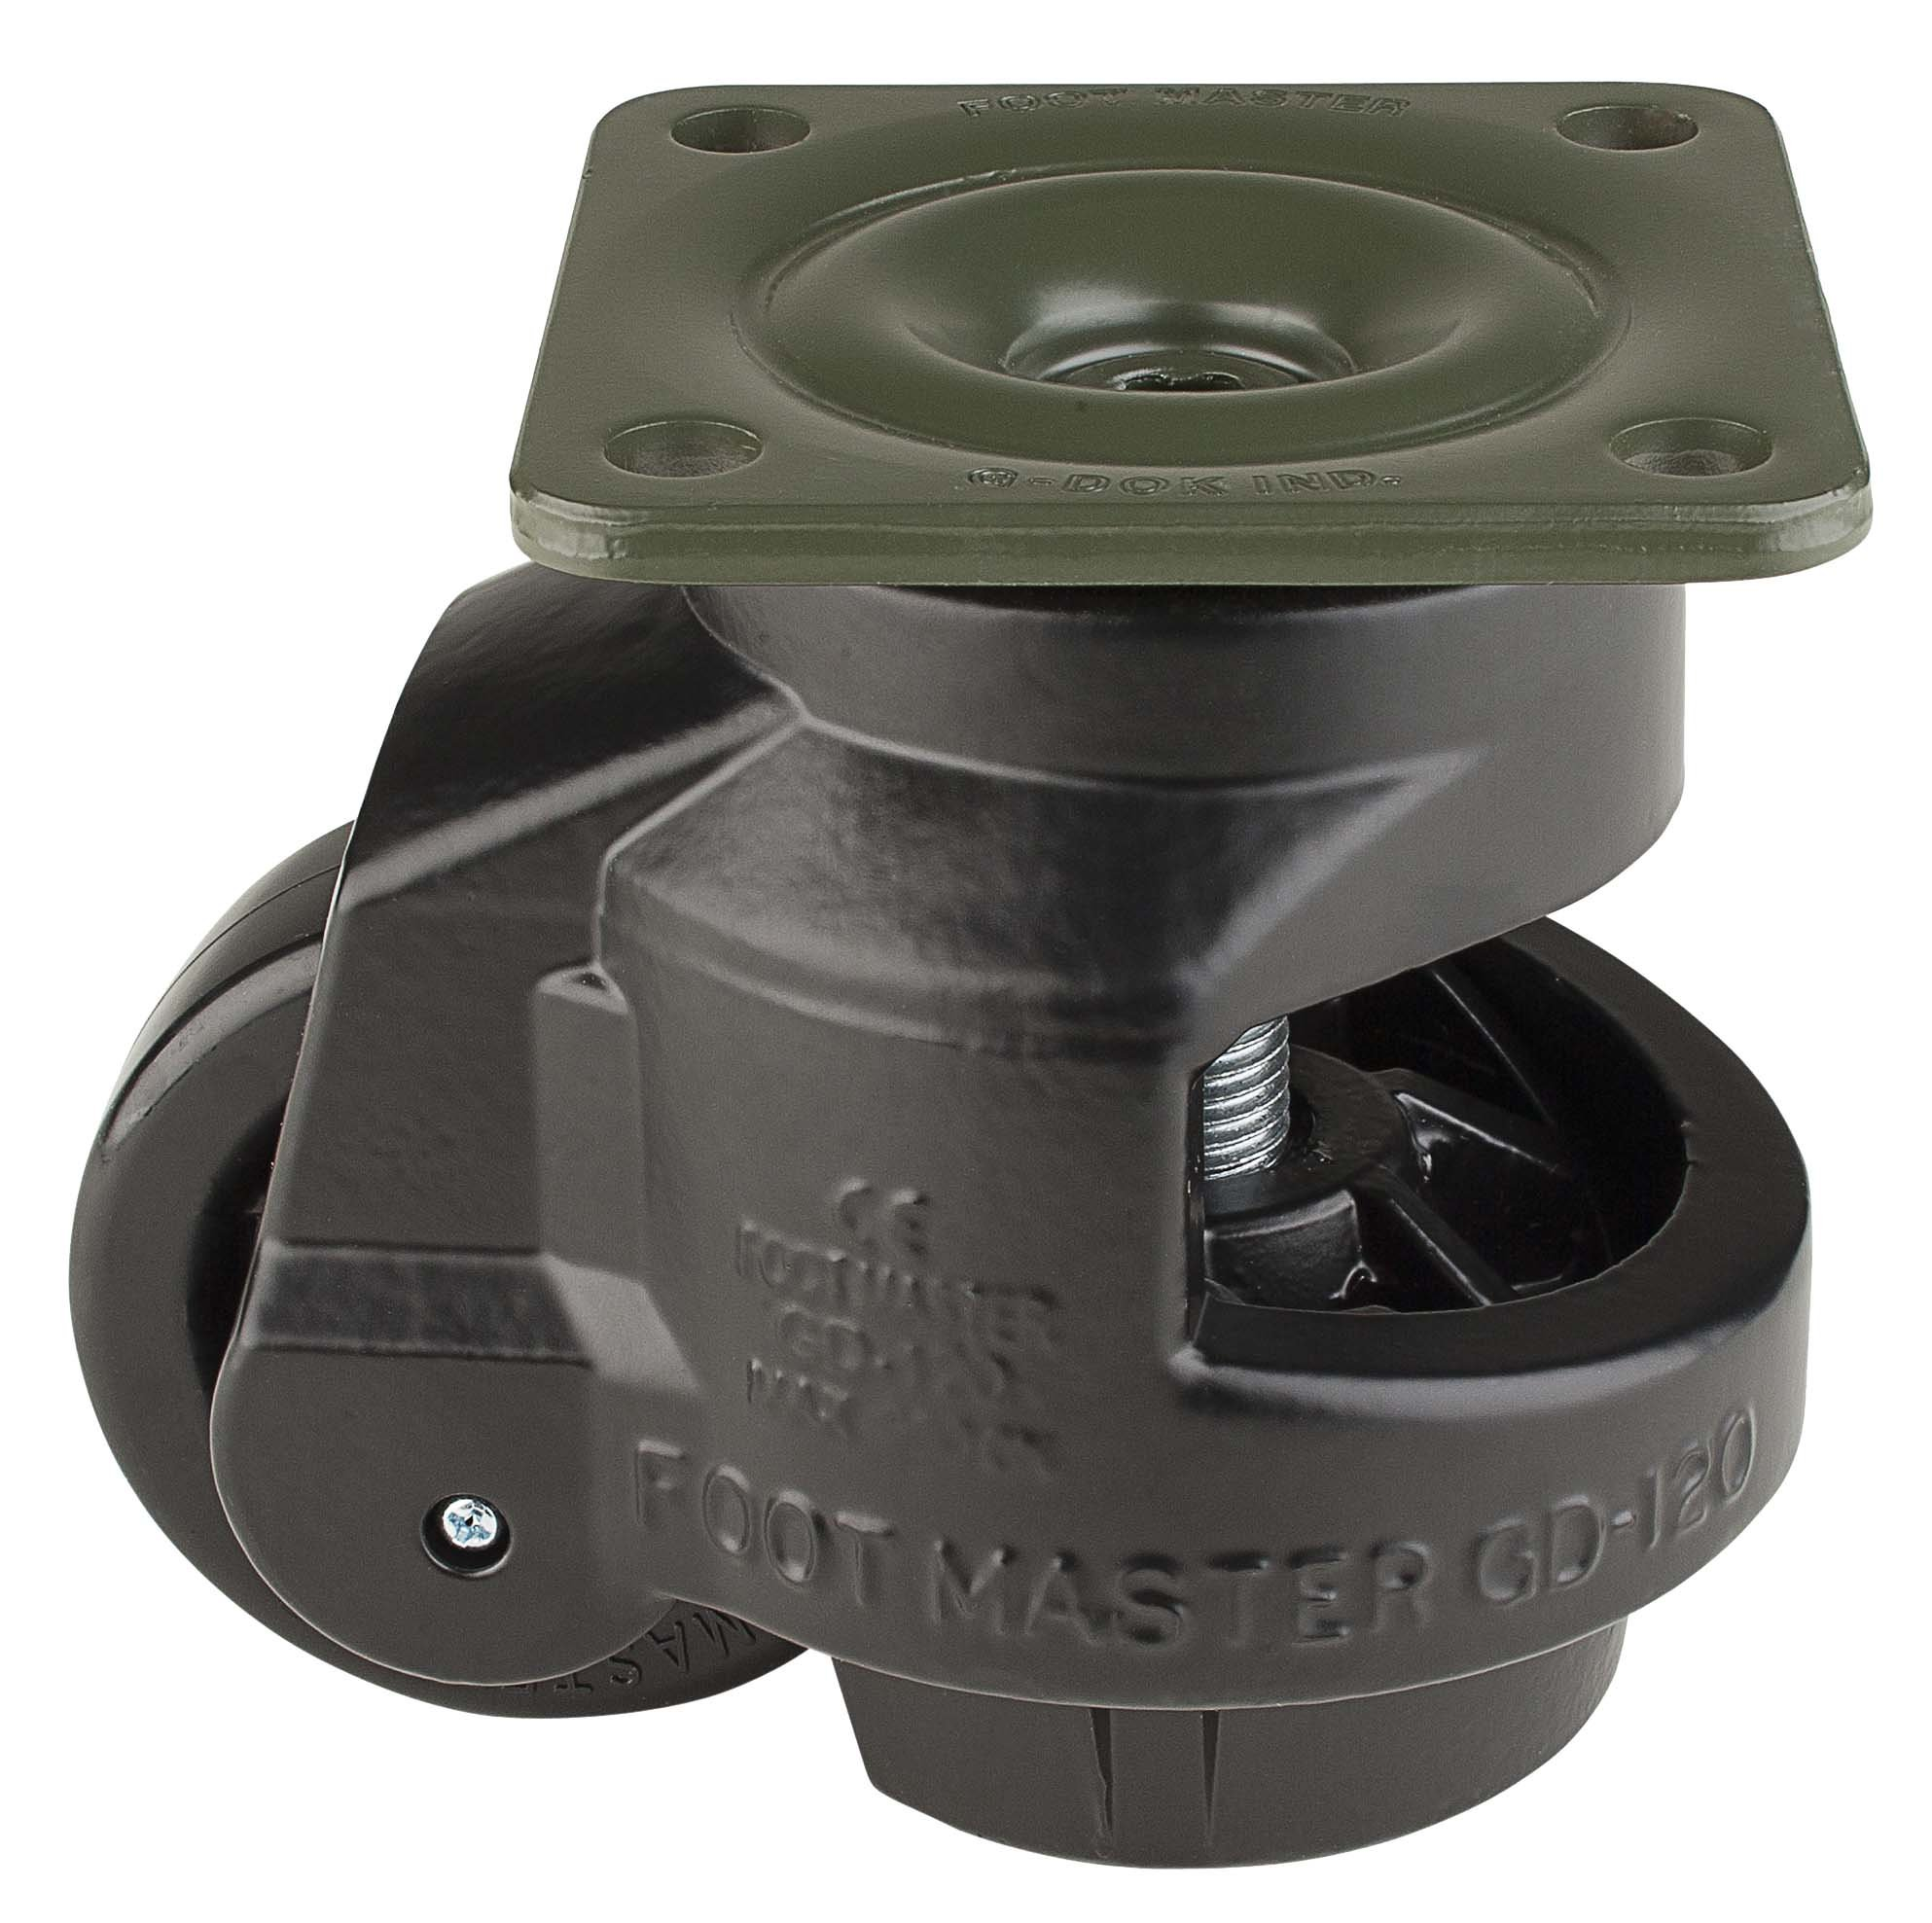 FOOTMASTER GD-120F-BLK Nylon Wheel and Aluminum Pad Leveling Caster, 2200 lbs, Top Plate 3 3/4'' x 3 3/4'', Bolt Holes 2 3/4'' x 2 3/4'', Black Finish